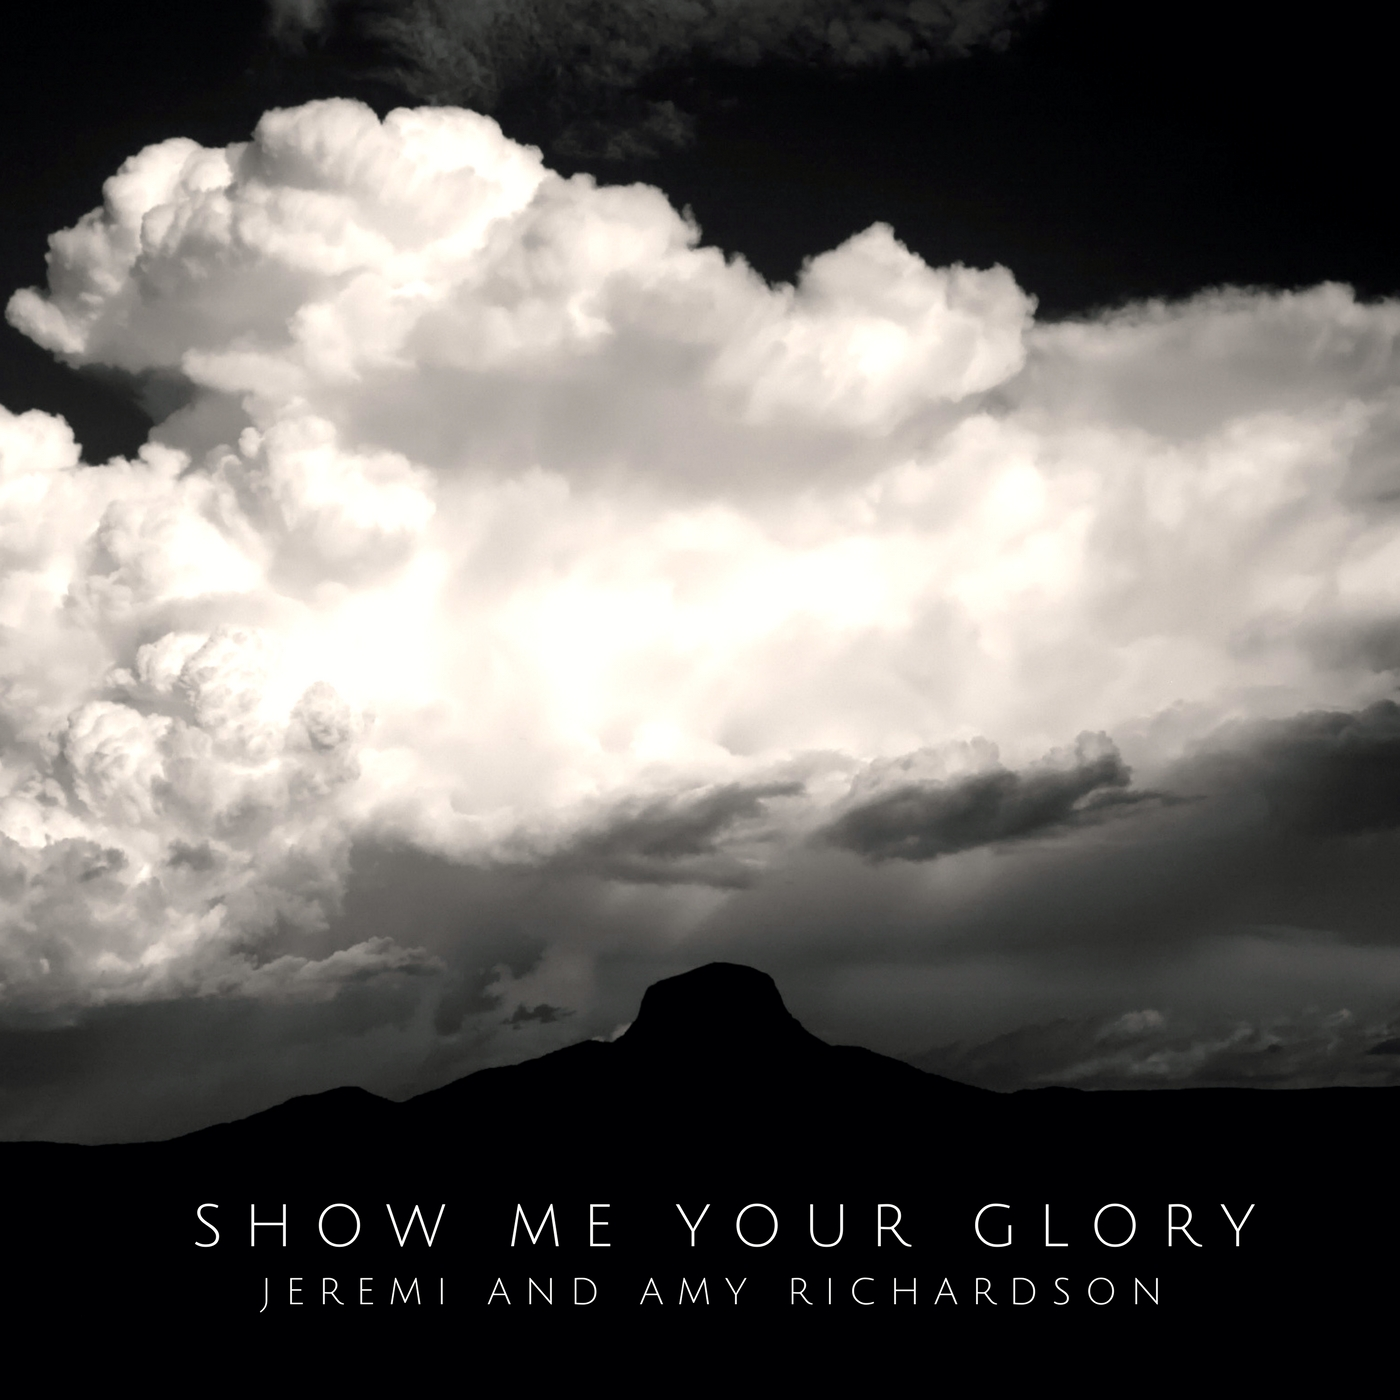 Jeremi and Amy Richardson : Show Me Your Glory